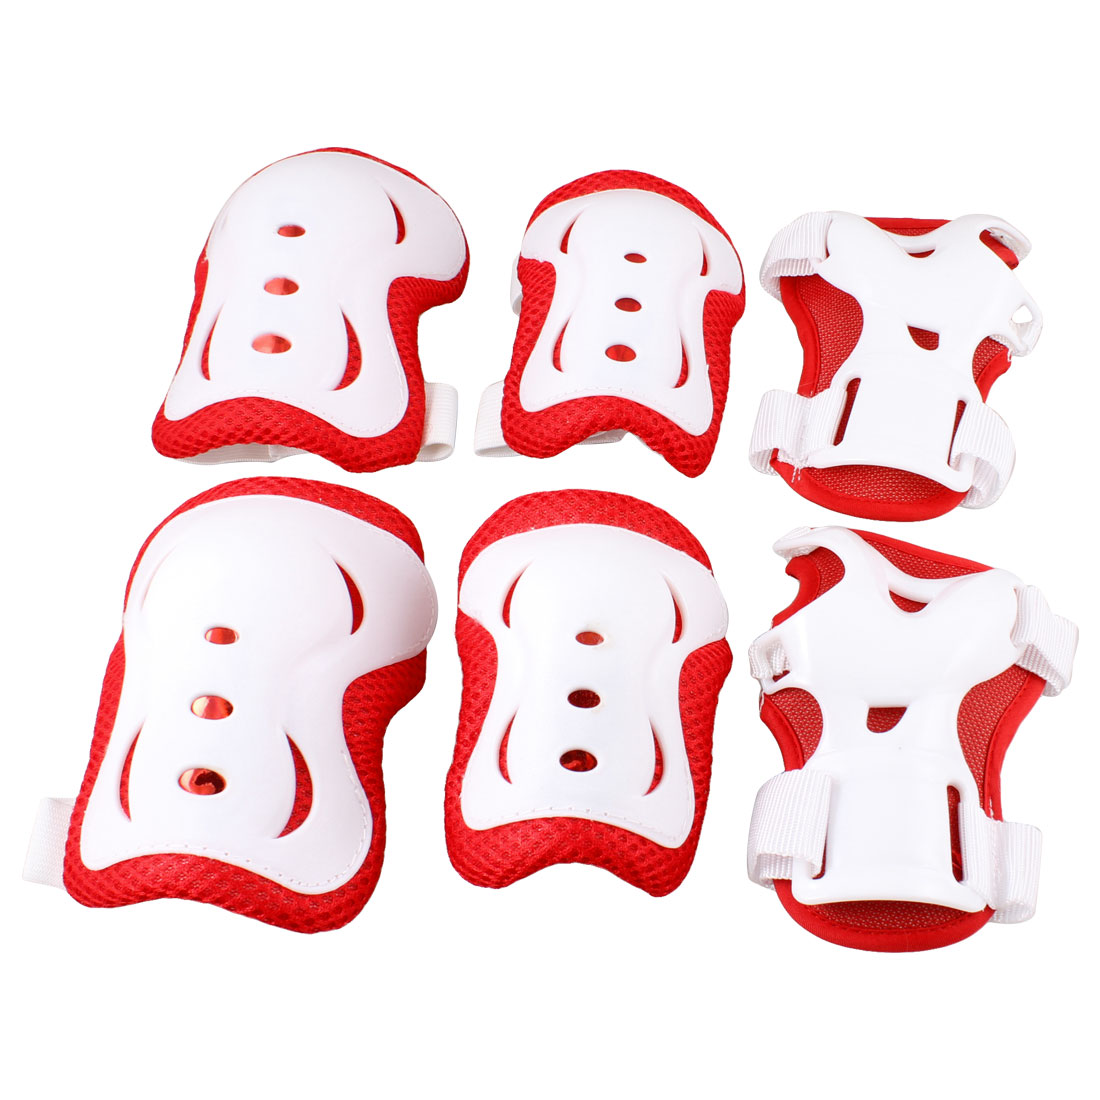 Unique Bargains 3 Pairs Skating Cycling Protective Gear Set Wrist Guard Elbow Knee Pads for